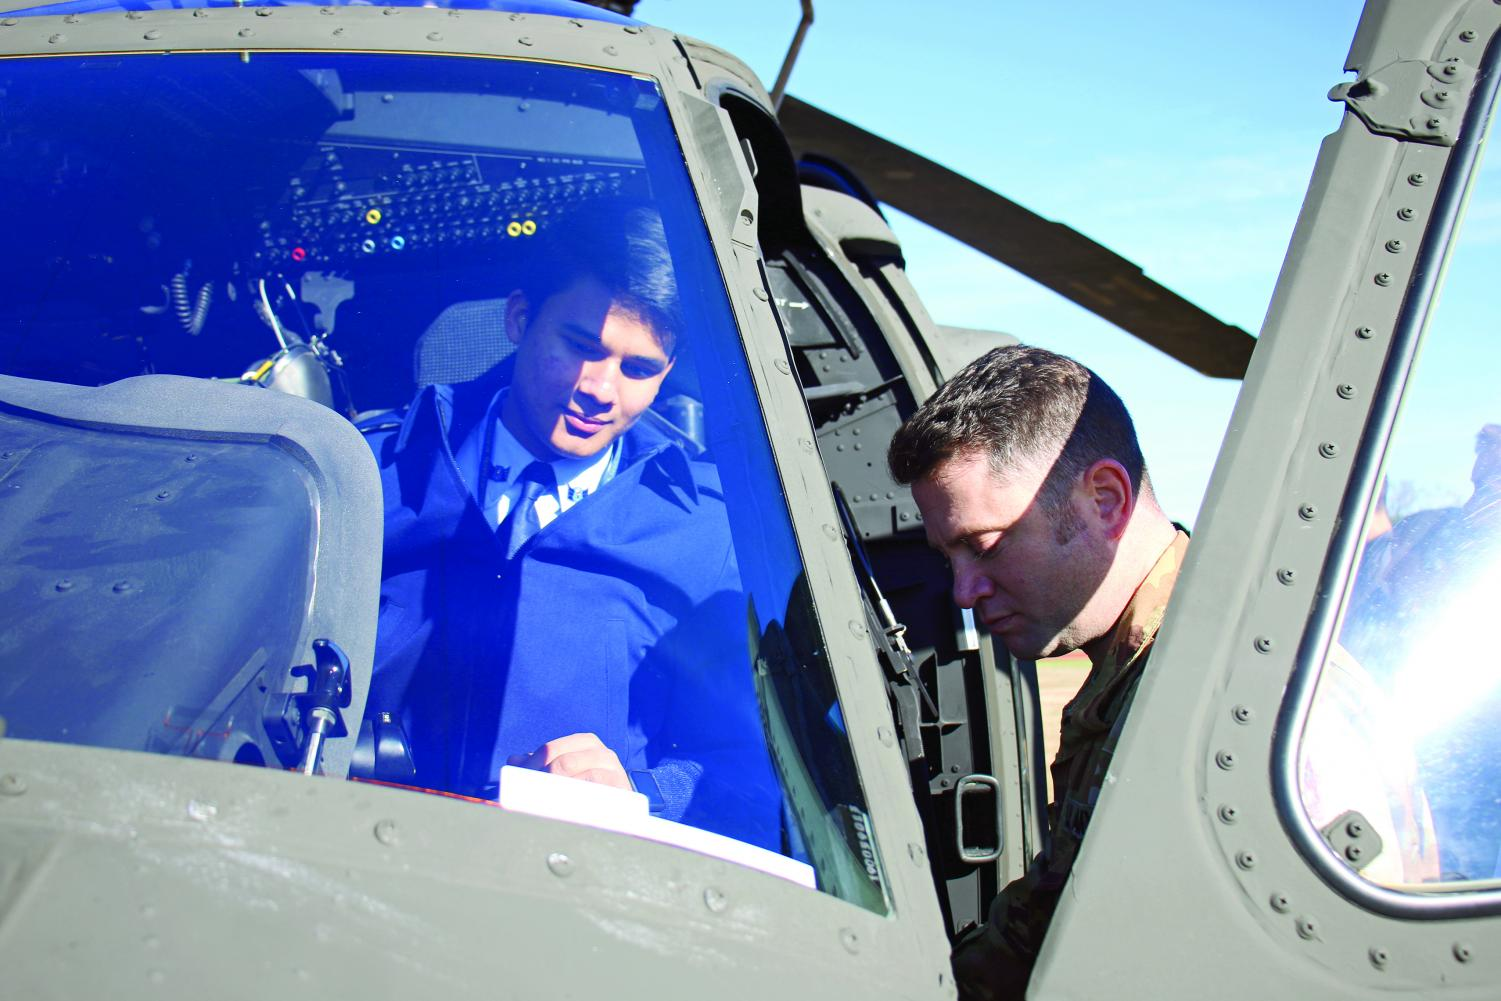 HANDS ON: Chief Warrant Officer Billy Black shows senior Walter Esparza the helicopter flight controls. Black was a cadet in JROTC when he attended Bowie.